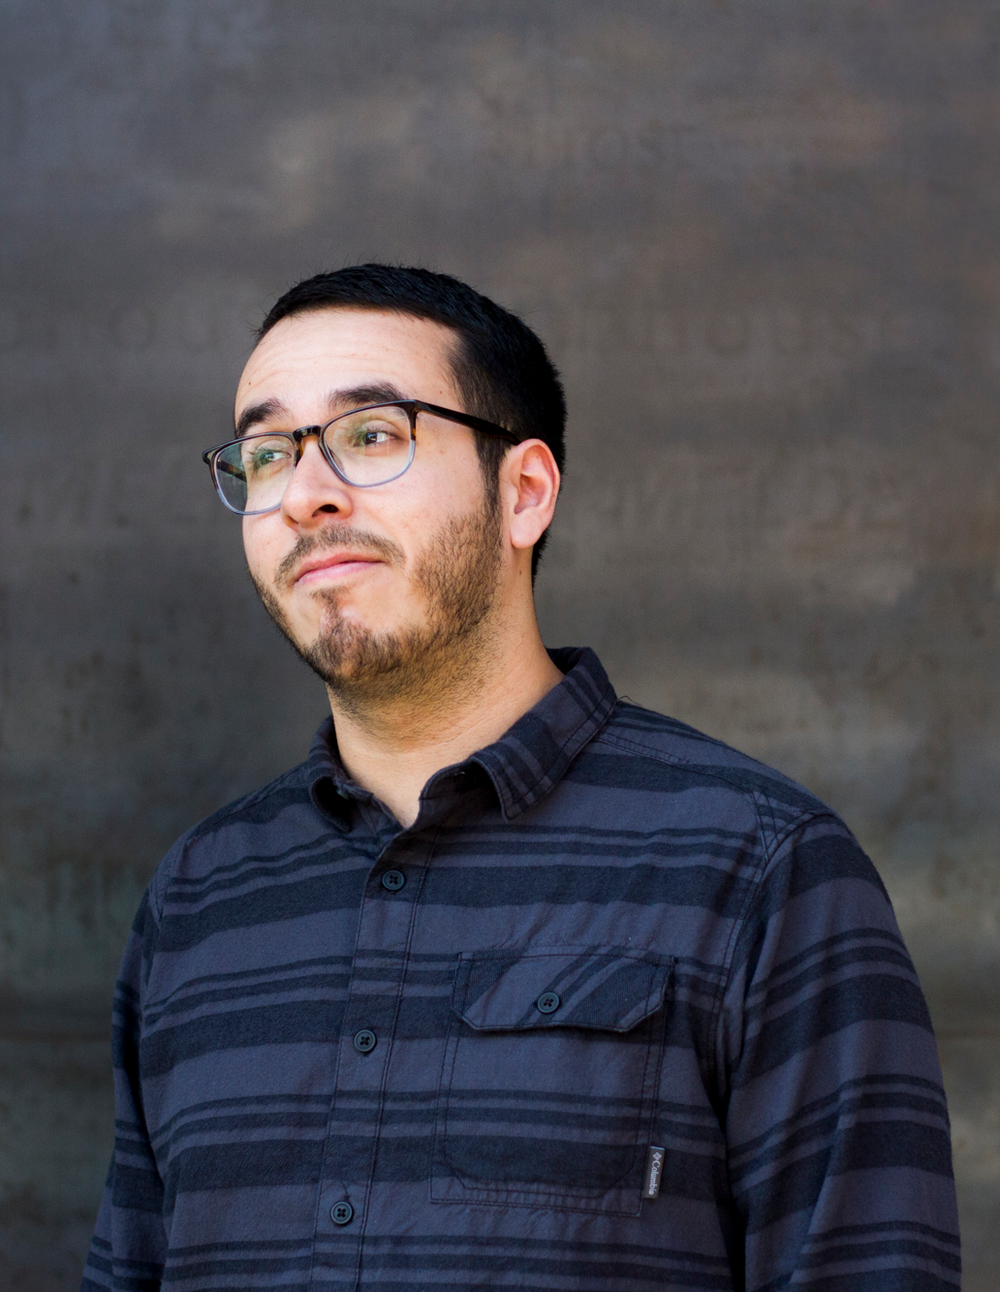 About - Hello, I'm Anthony M. Zubia - a Freelance Designer with 6+ years of experience in the nonprofit sector and startup scene in Austin, TX. I am also a UX Design student with experience creating prototypes and user interfaces. Aside from being a student, I am an online teacher with over 2,500 students worldwide learning about Passive Income, Print On Demand, Graphic Design, and how you can earn a living as a Creative.